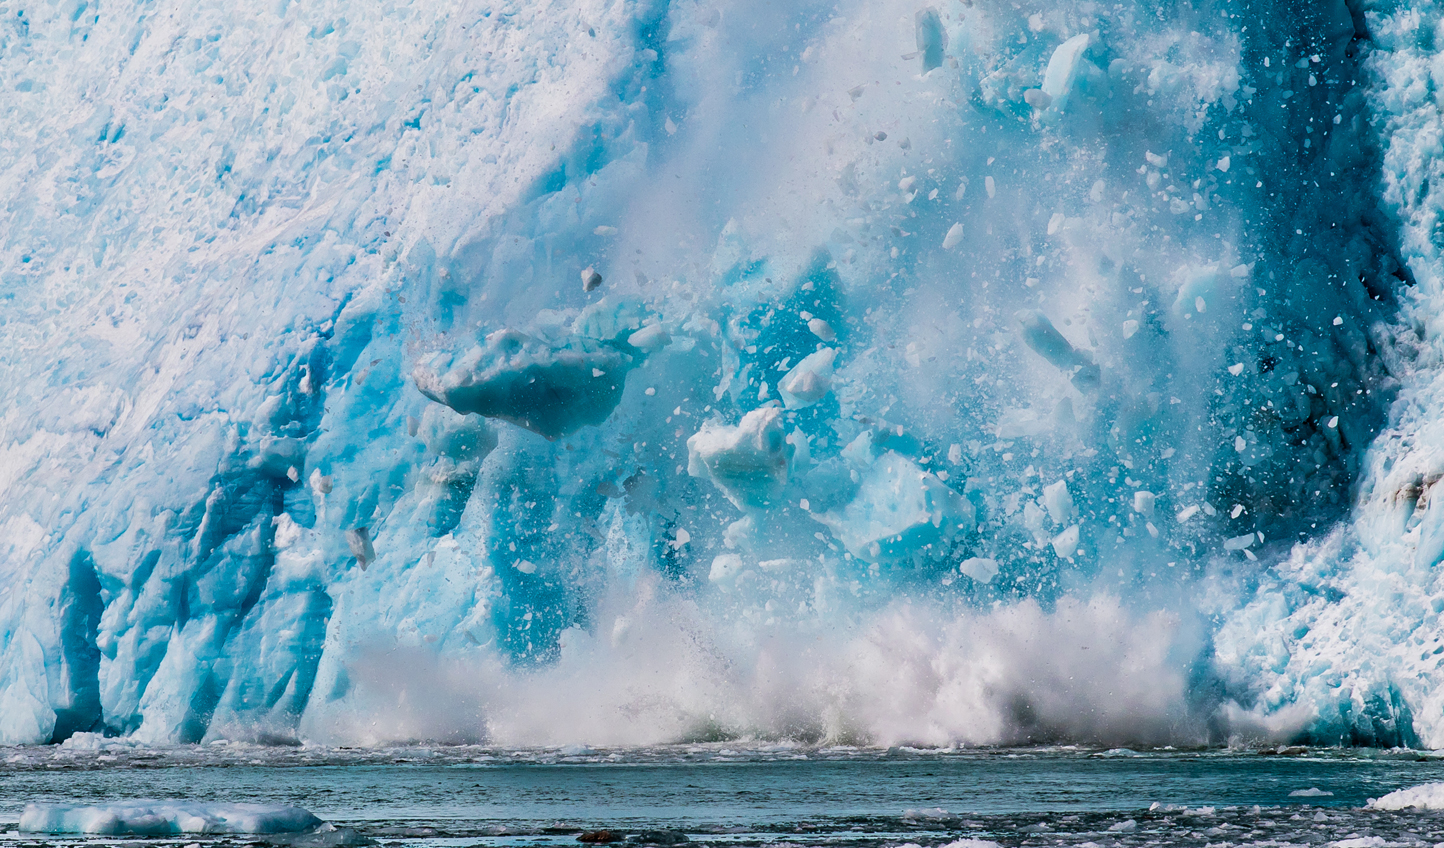 Head out into Kenai Fjords National Park and watch in awe as hunks of ice crash off the Harding Icefield